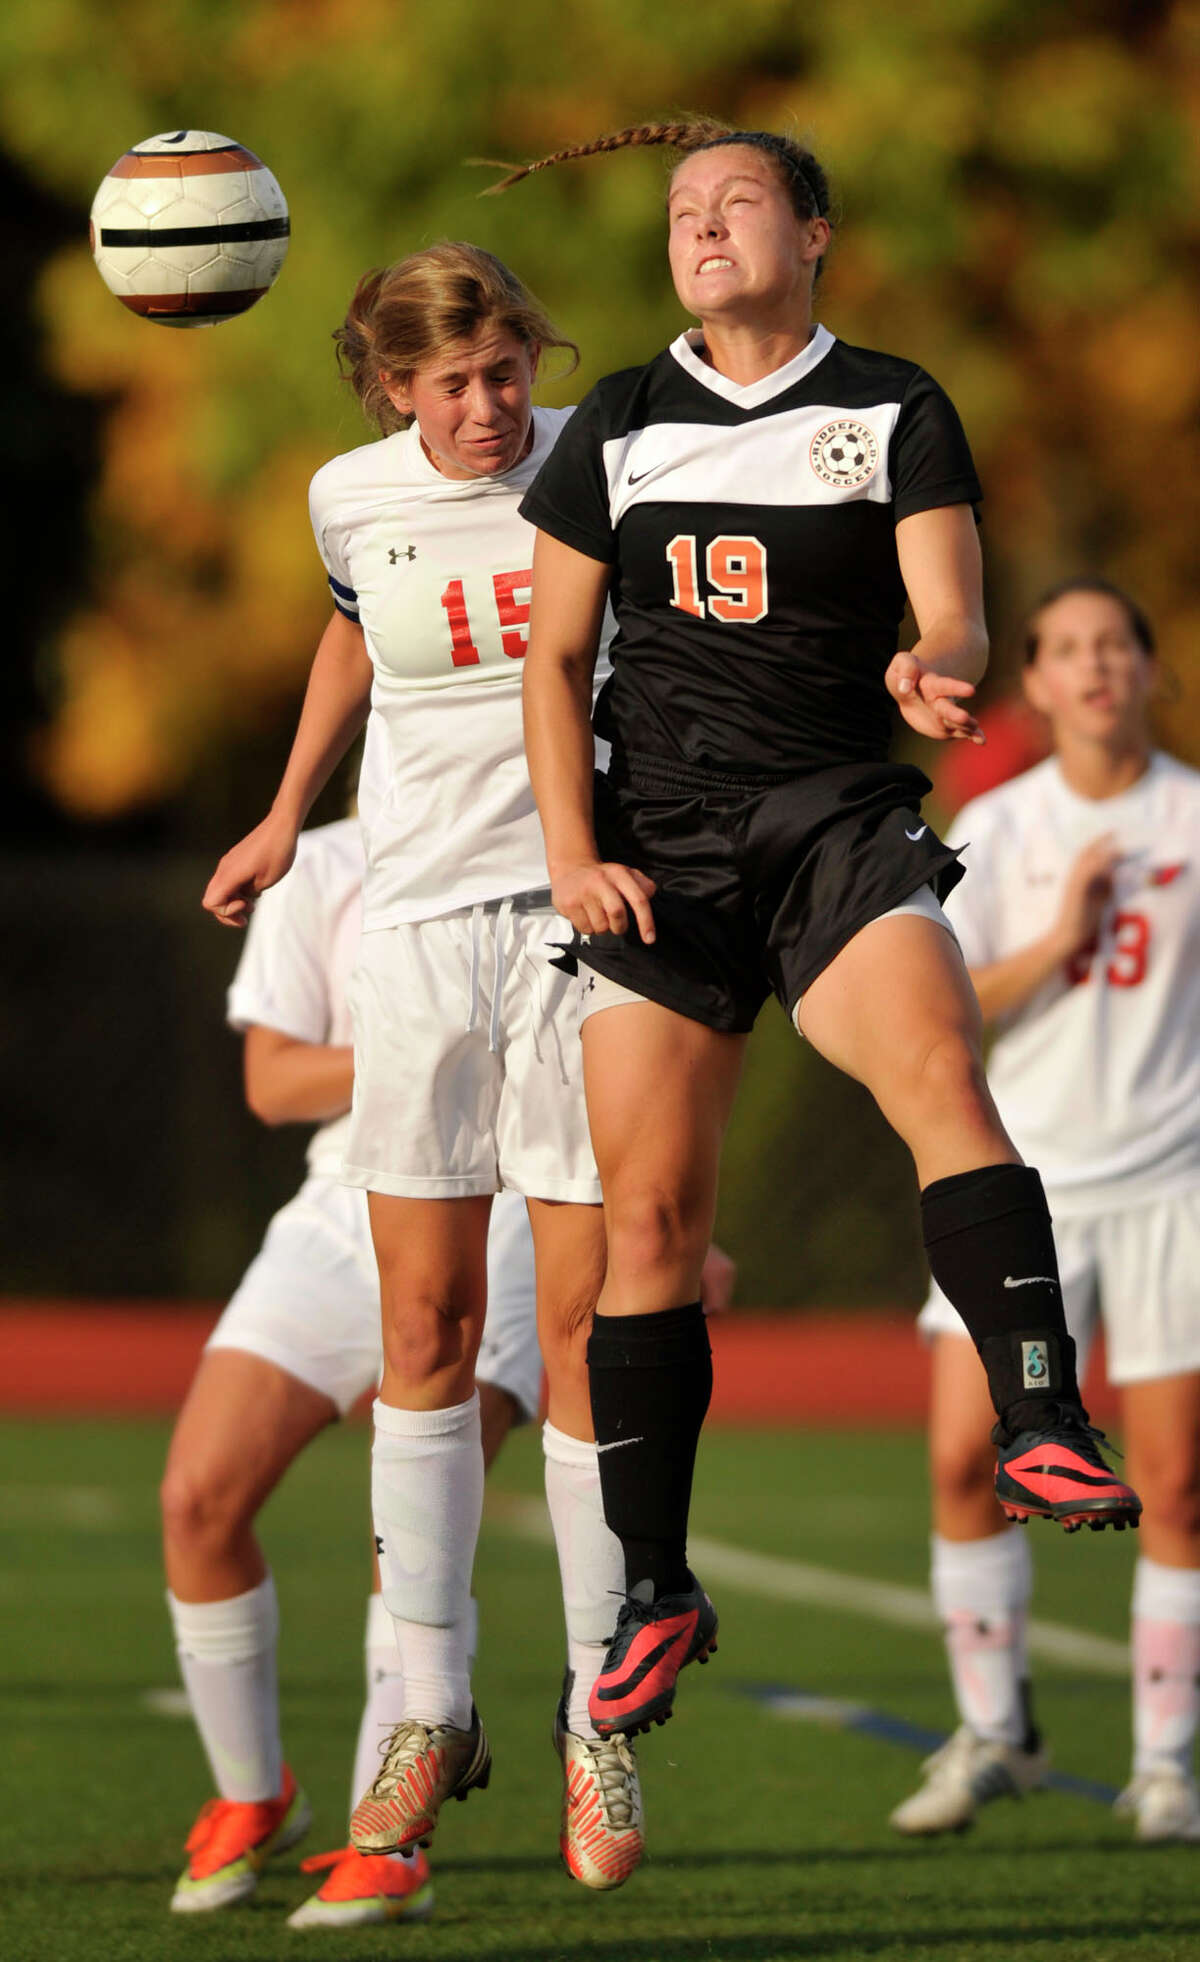 Greenwich's Elizabeth Warner and Ridgefield's Liane Keegans compete for the header during their game at Greenwich High School in Greenwich, Conn., on Monday, Oct. 14, 2013. The game ended in a 1-1 tie.